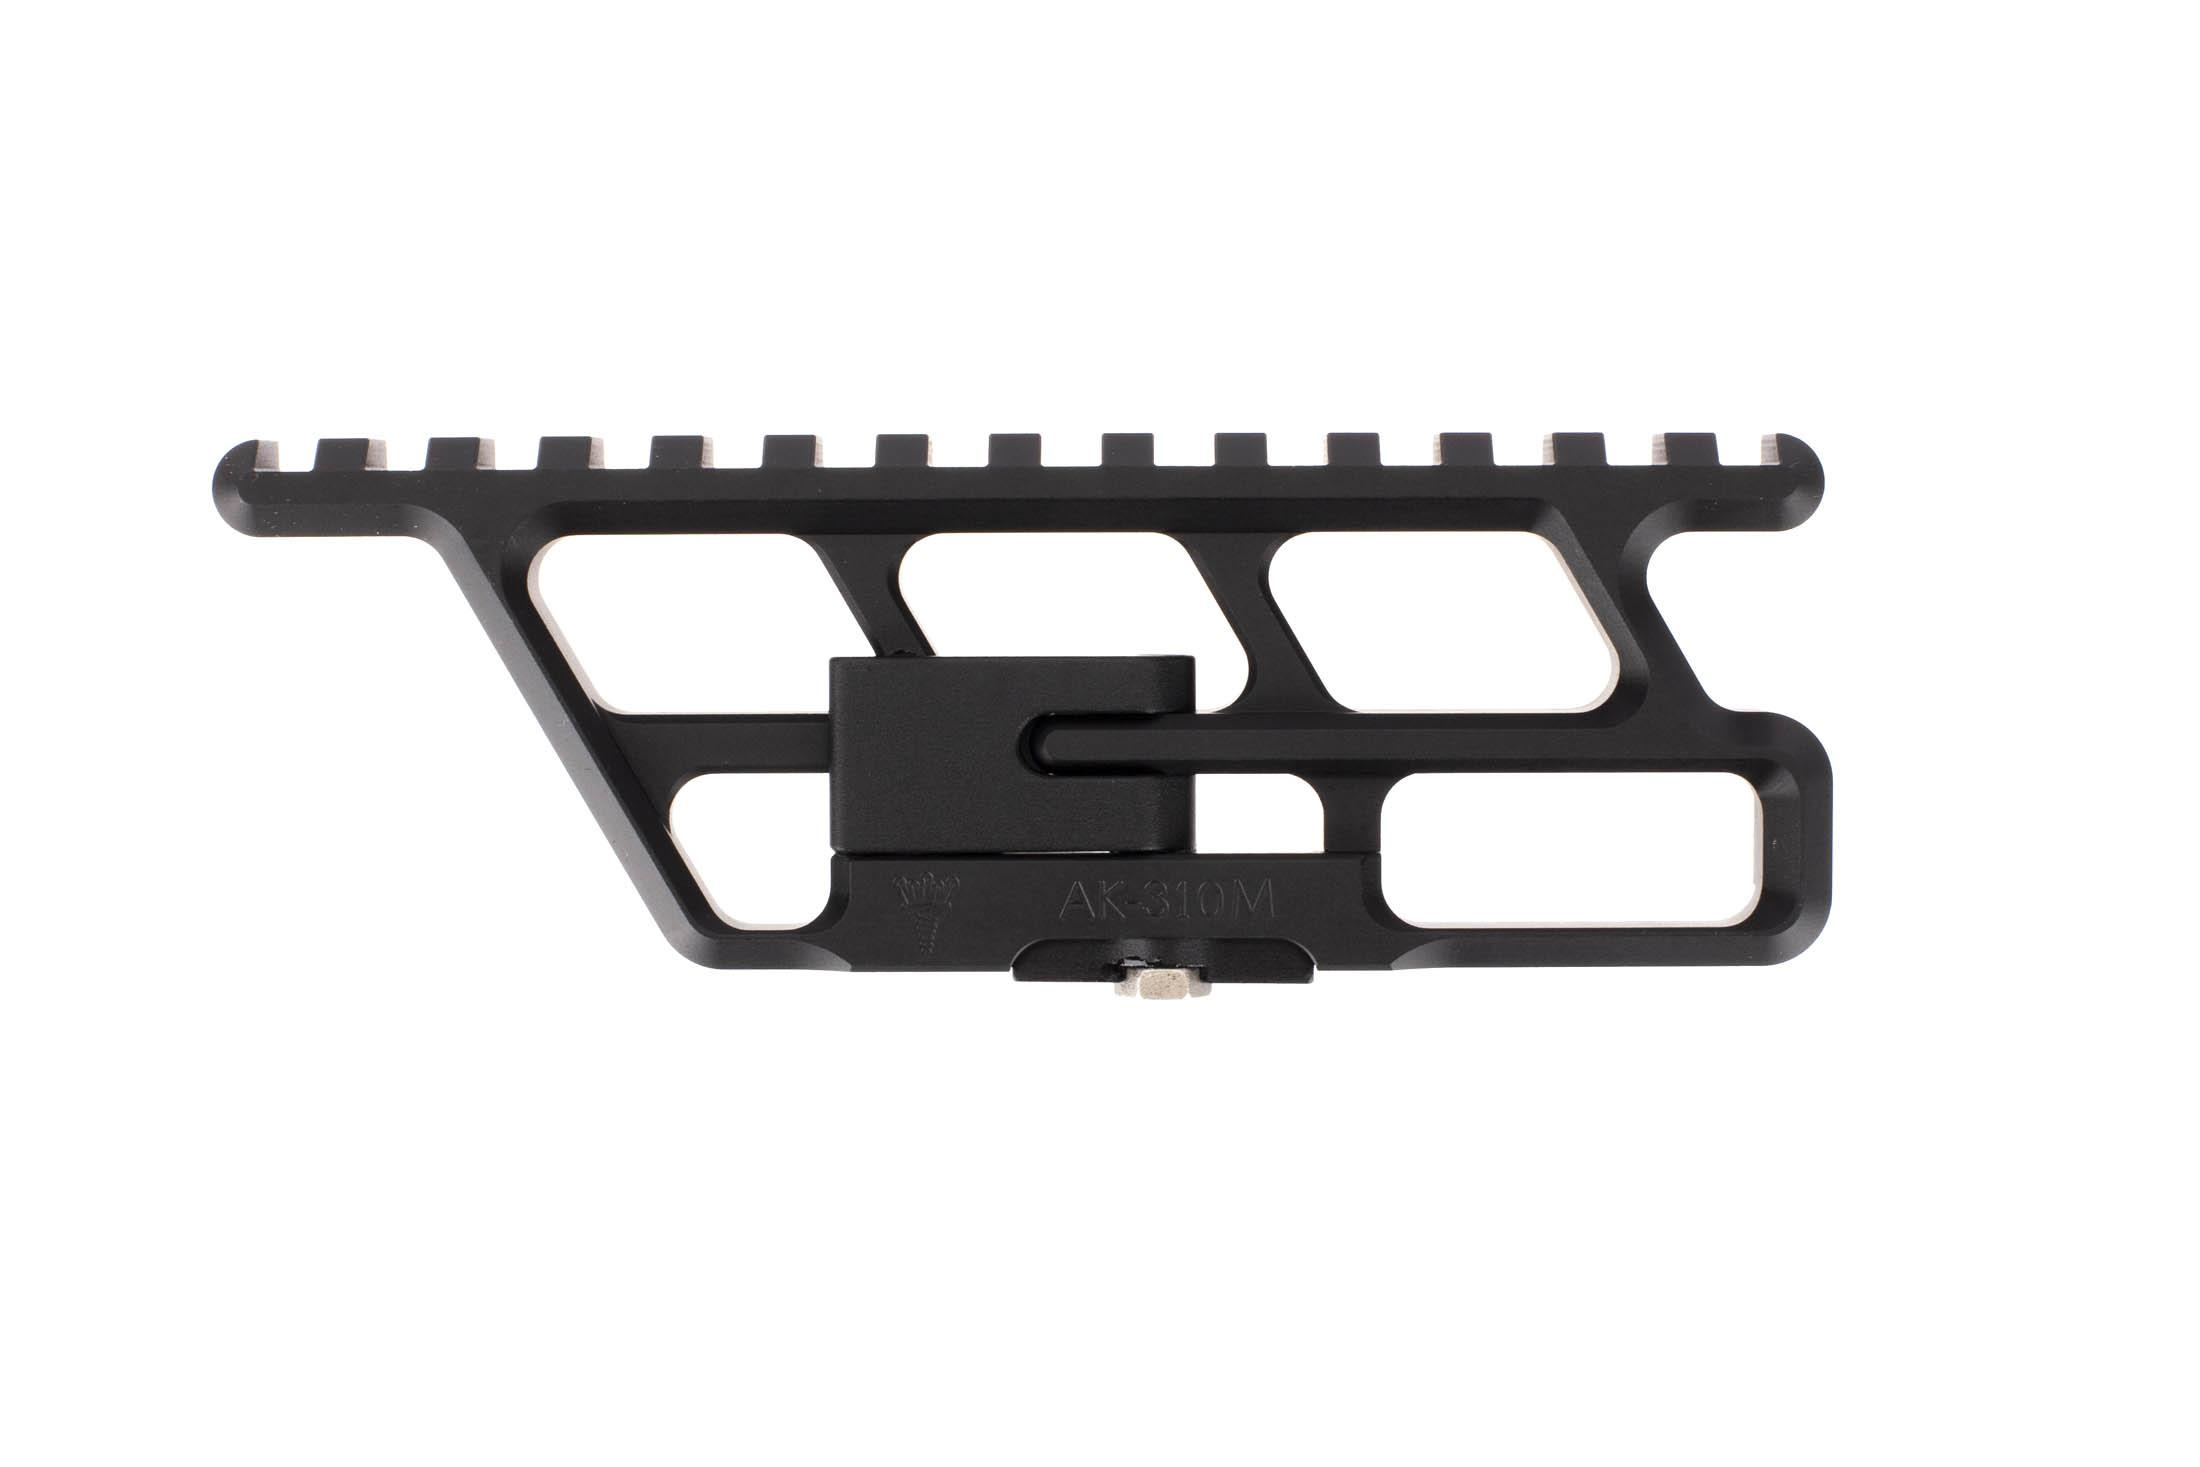 The RS Regulate ak-310m lower full length scope rail is designed for use with Romanian ak47 rifles